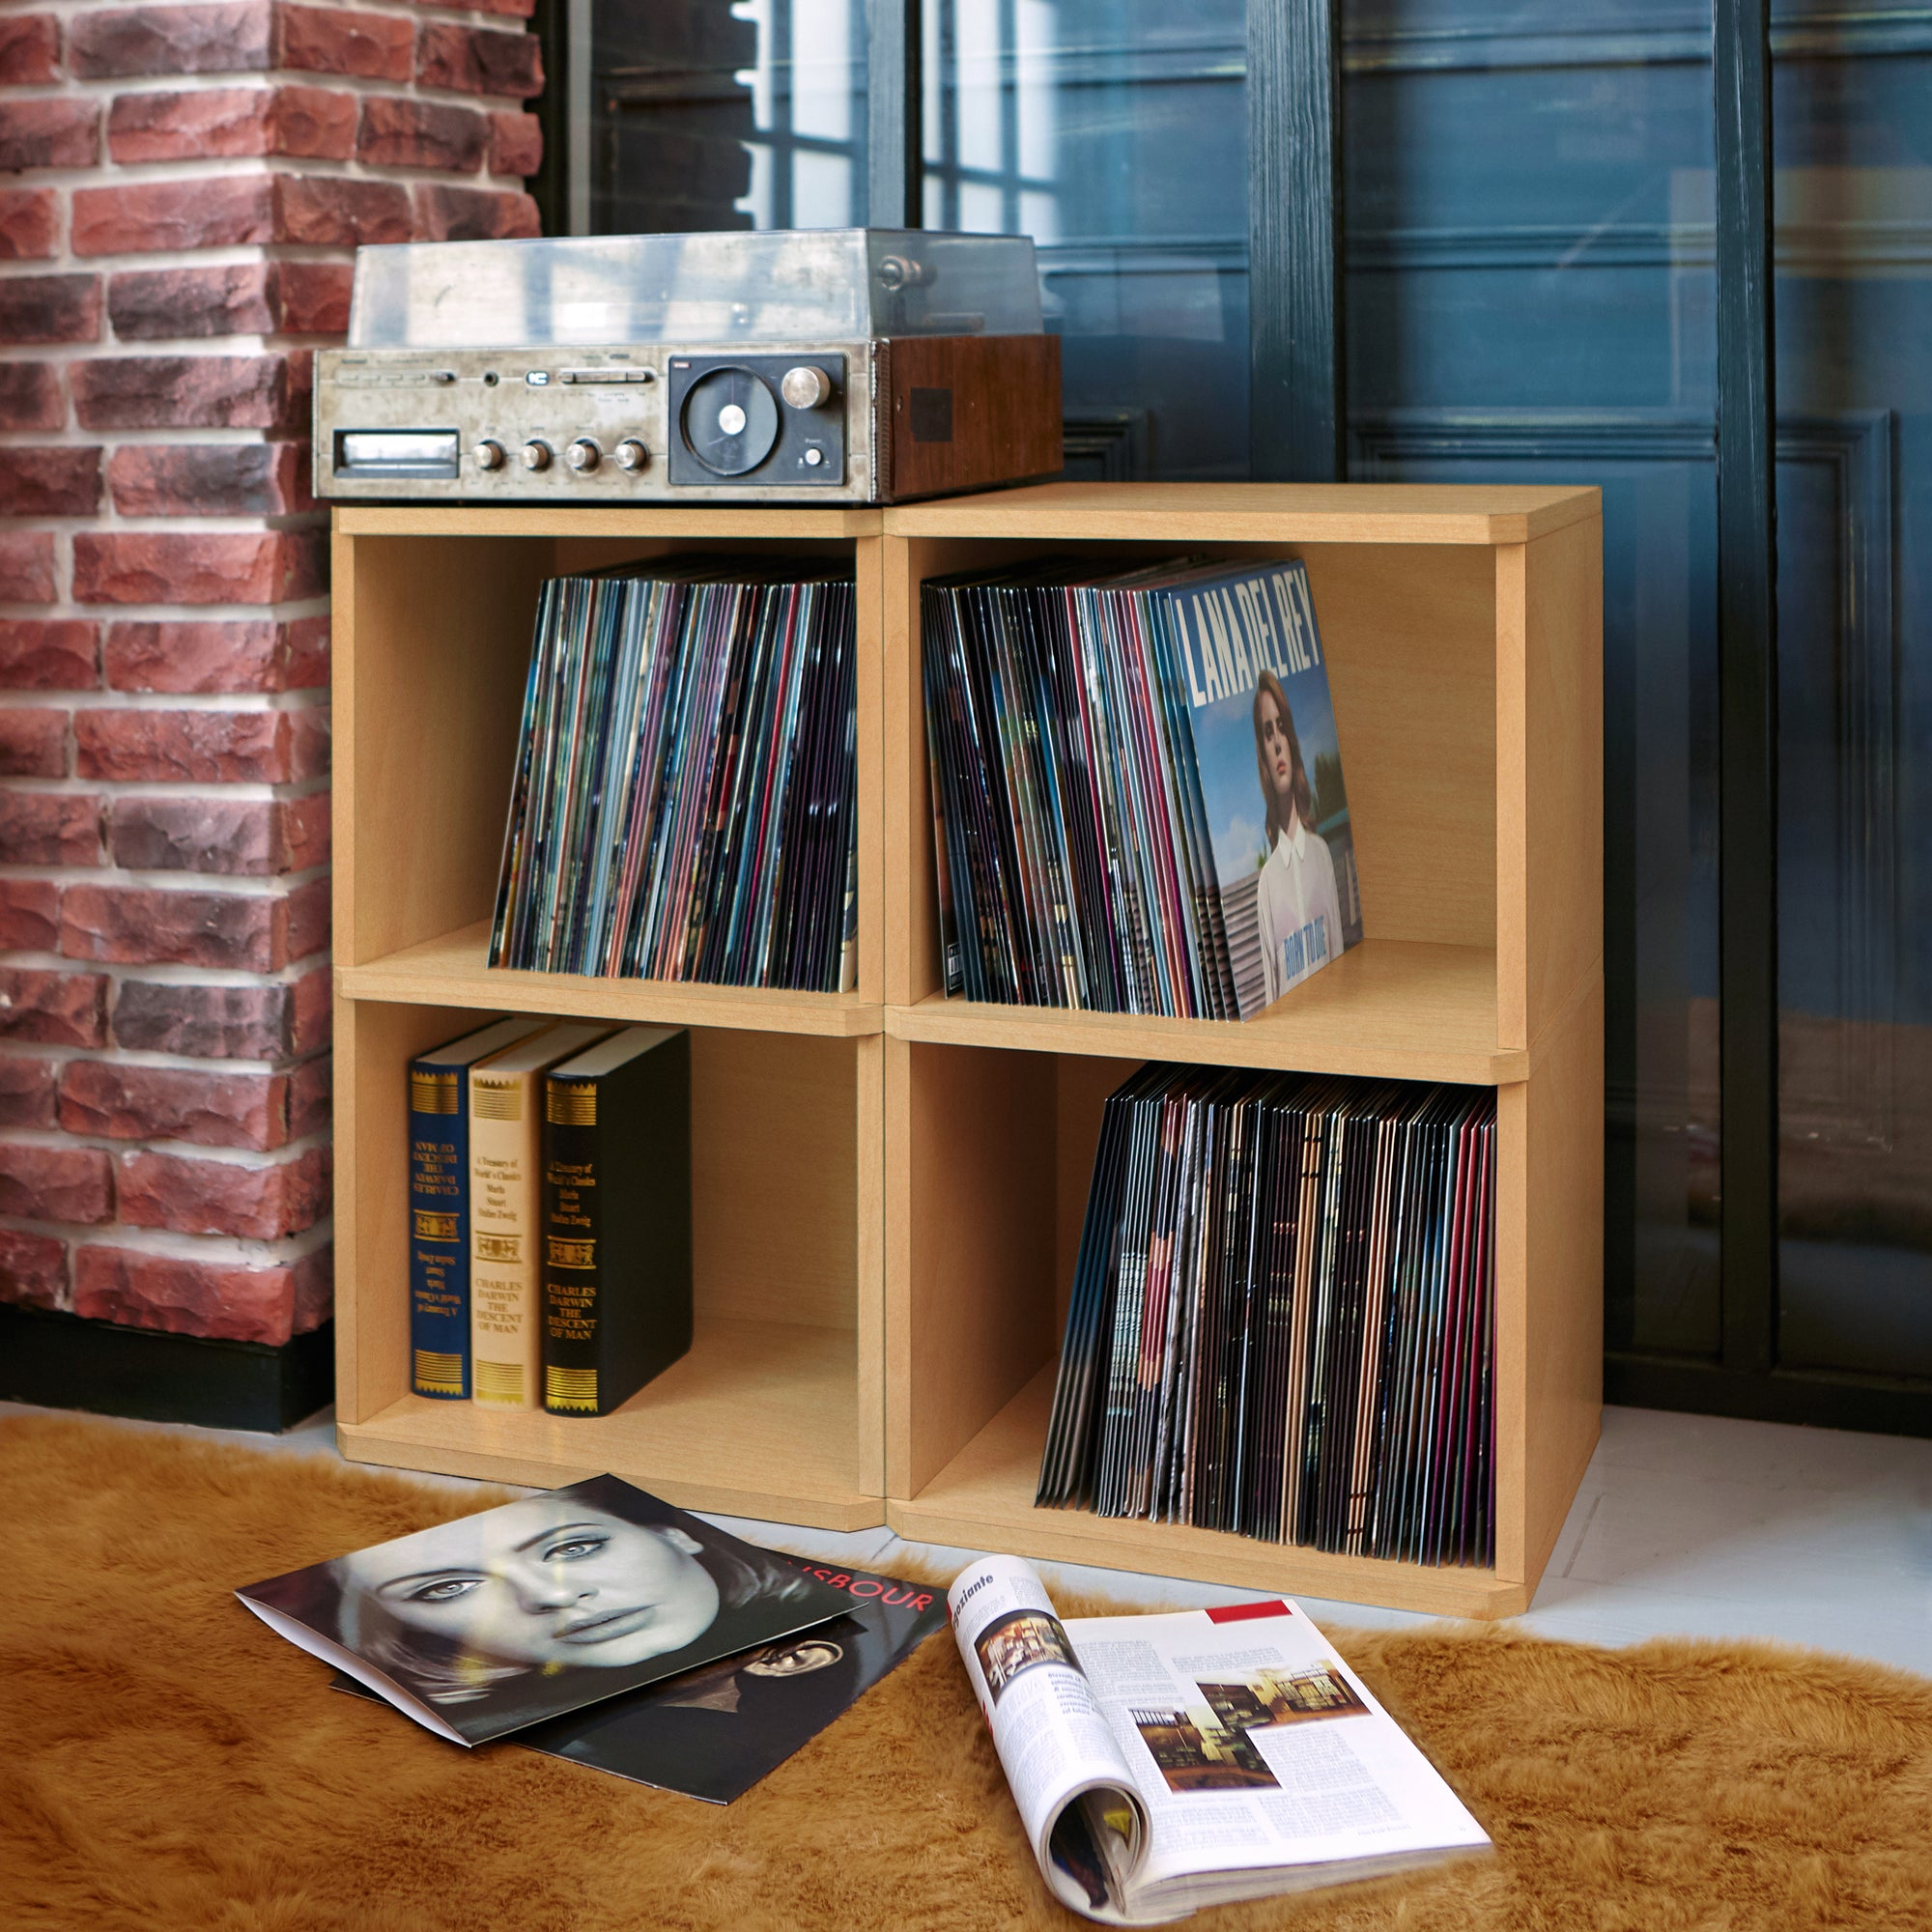 storage pin carry today shop styles shelf record shelves all urban we vinyl the outfitters latest at and